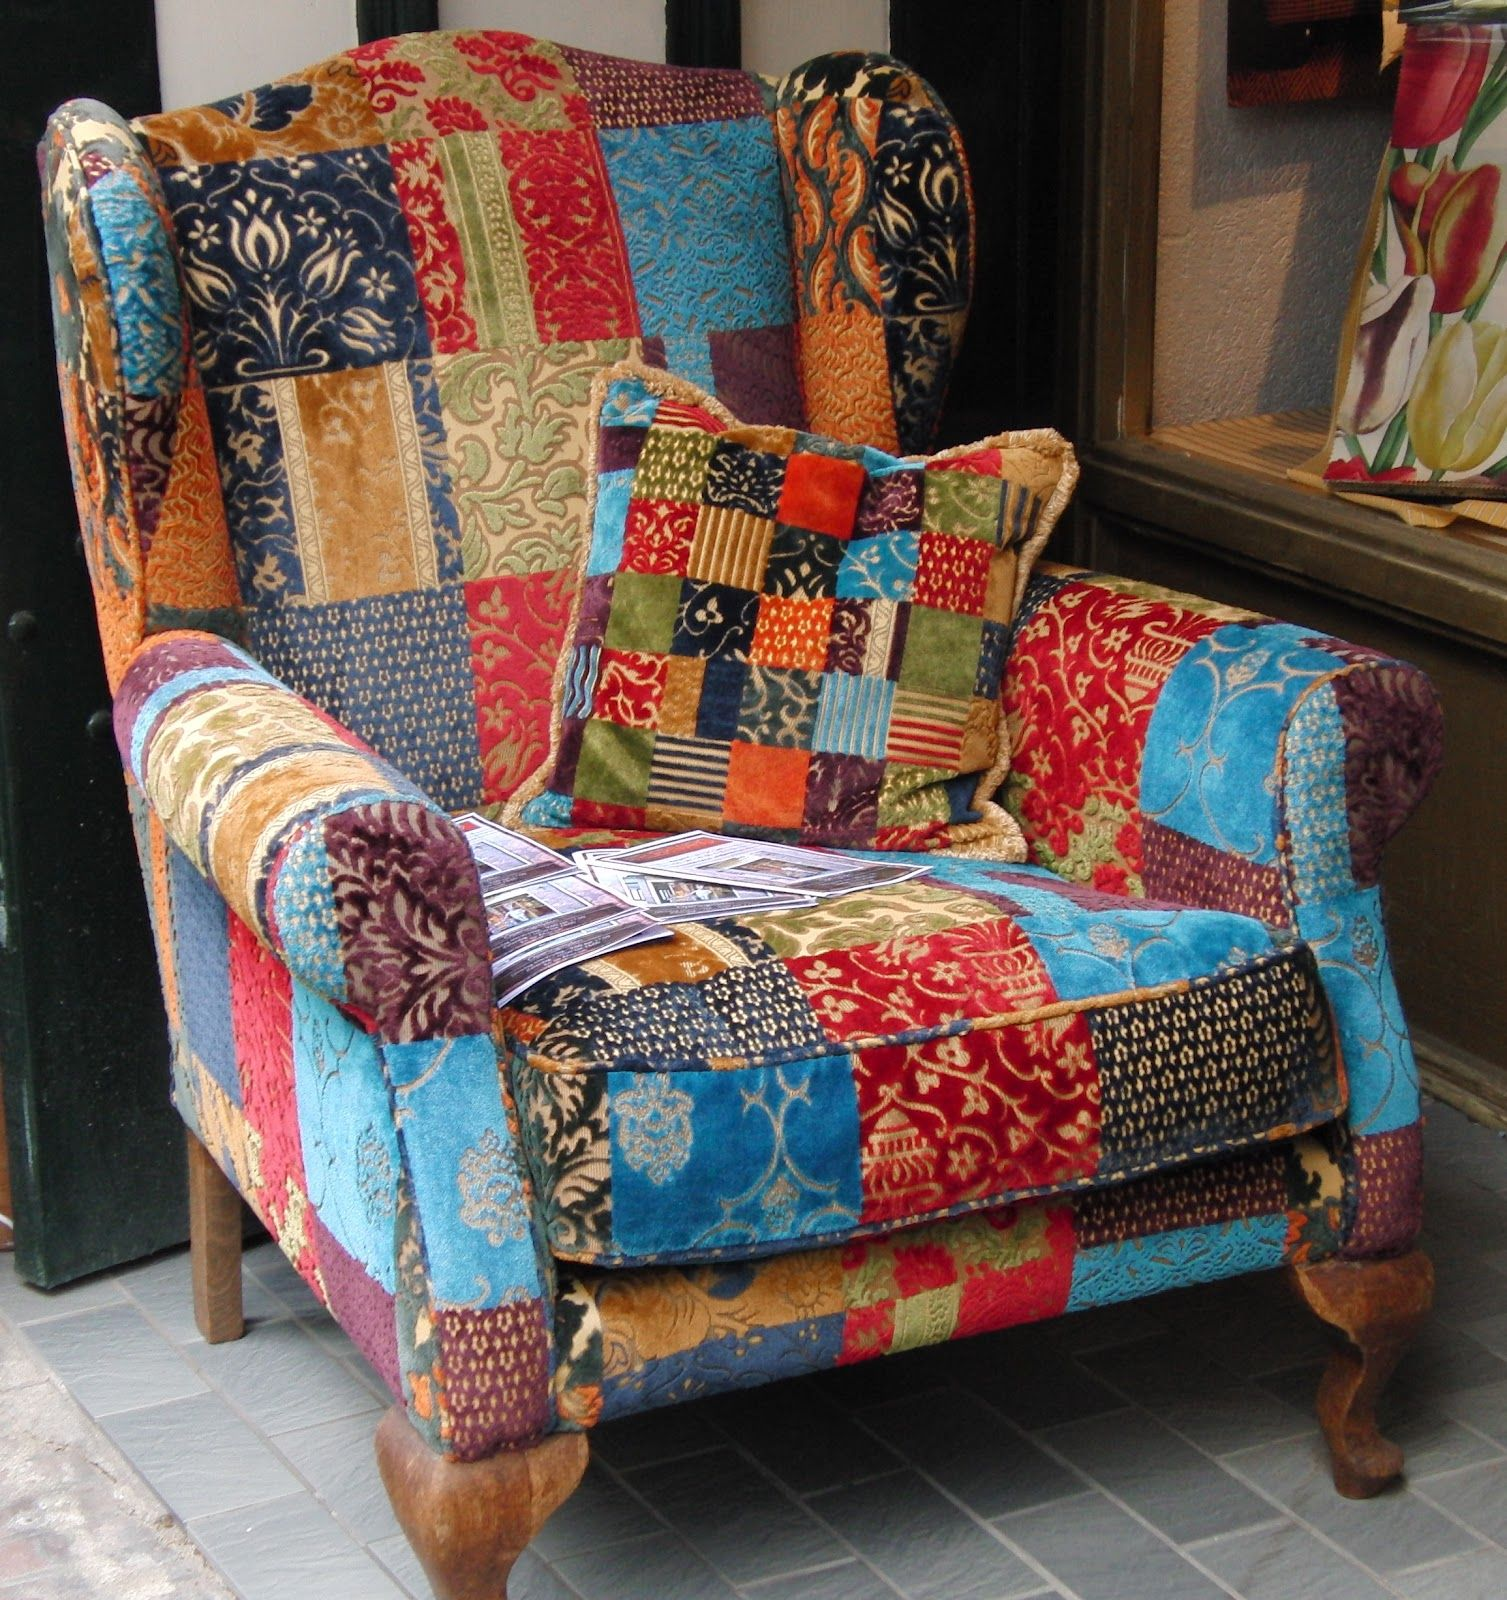 Missoni Fabric Covered Bergere Chair: Patchwork Velvet Chair, Photo By Marjo (The Netherlands